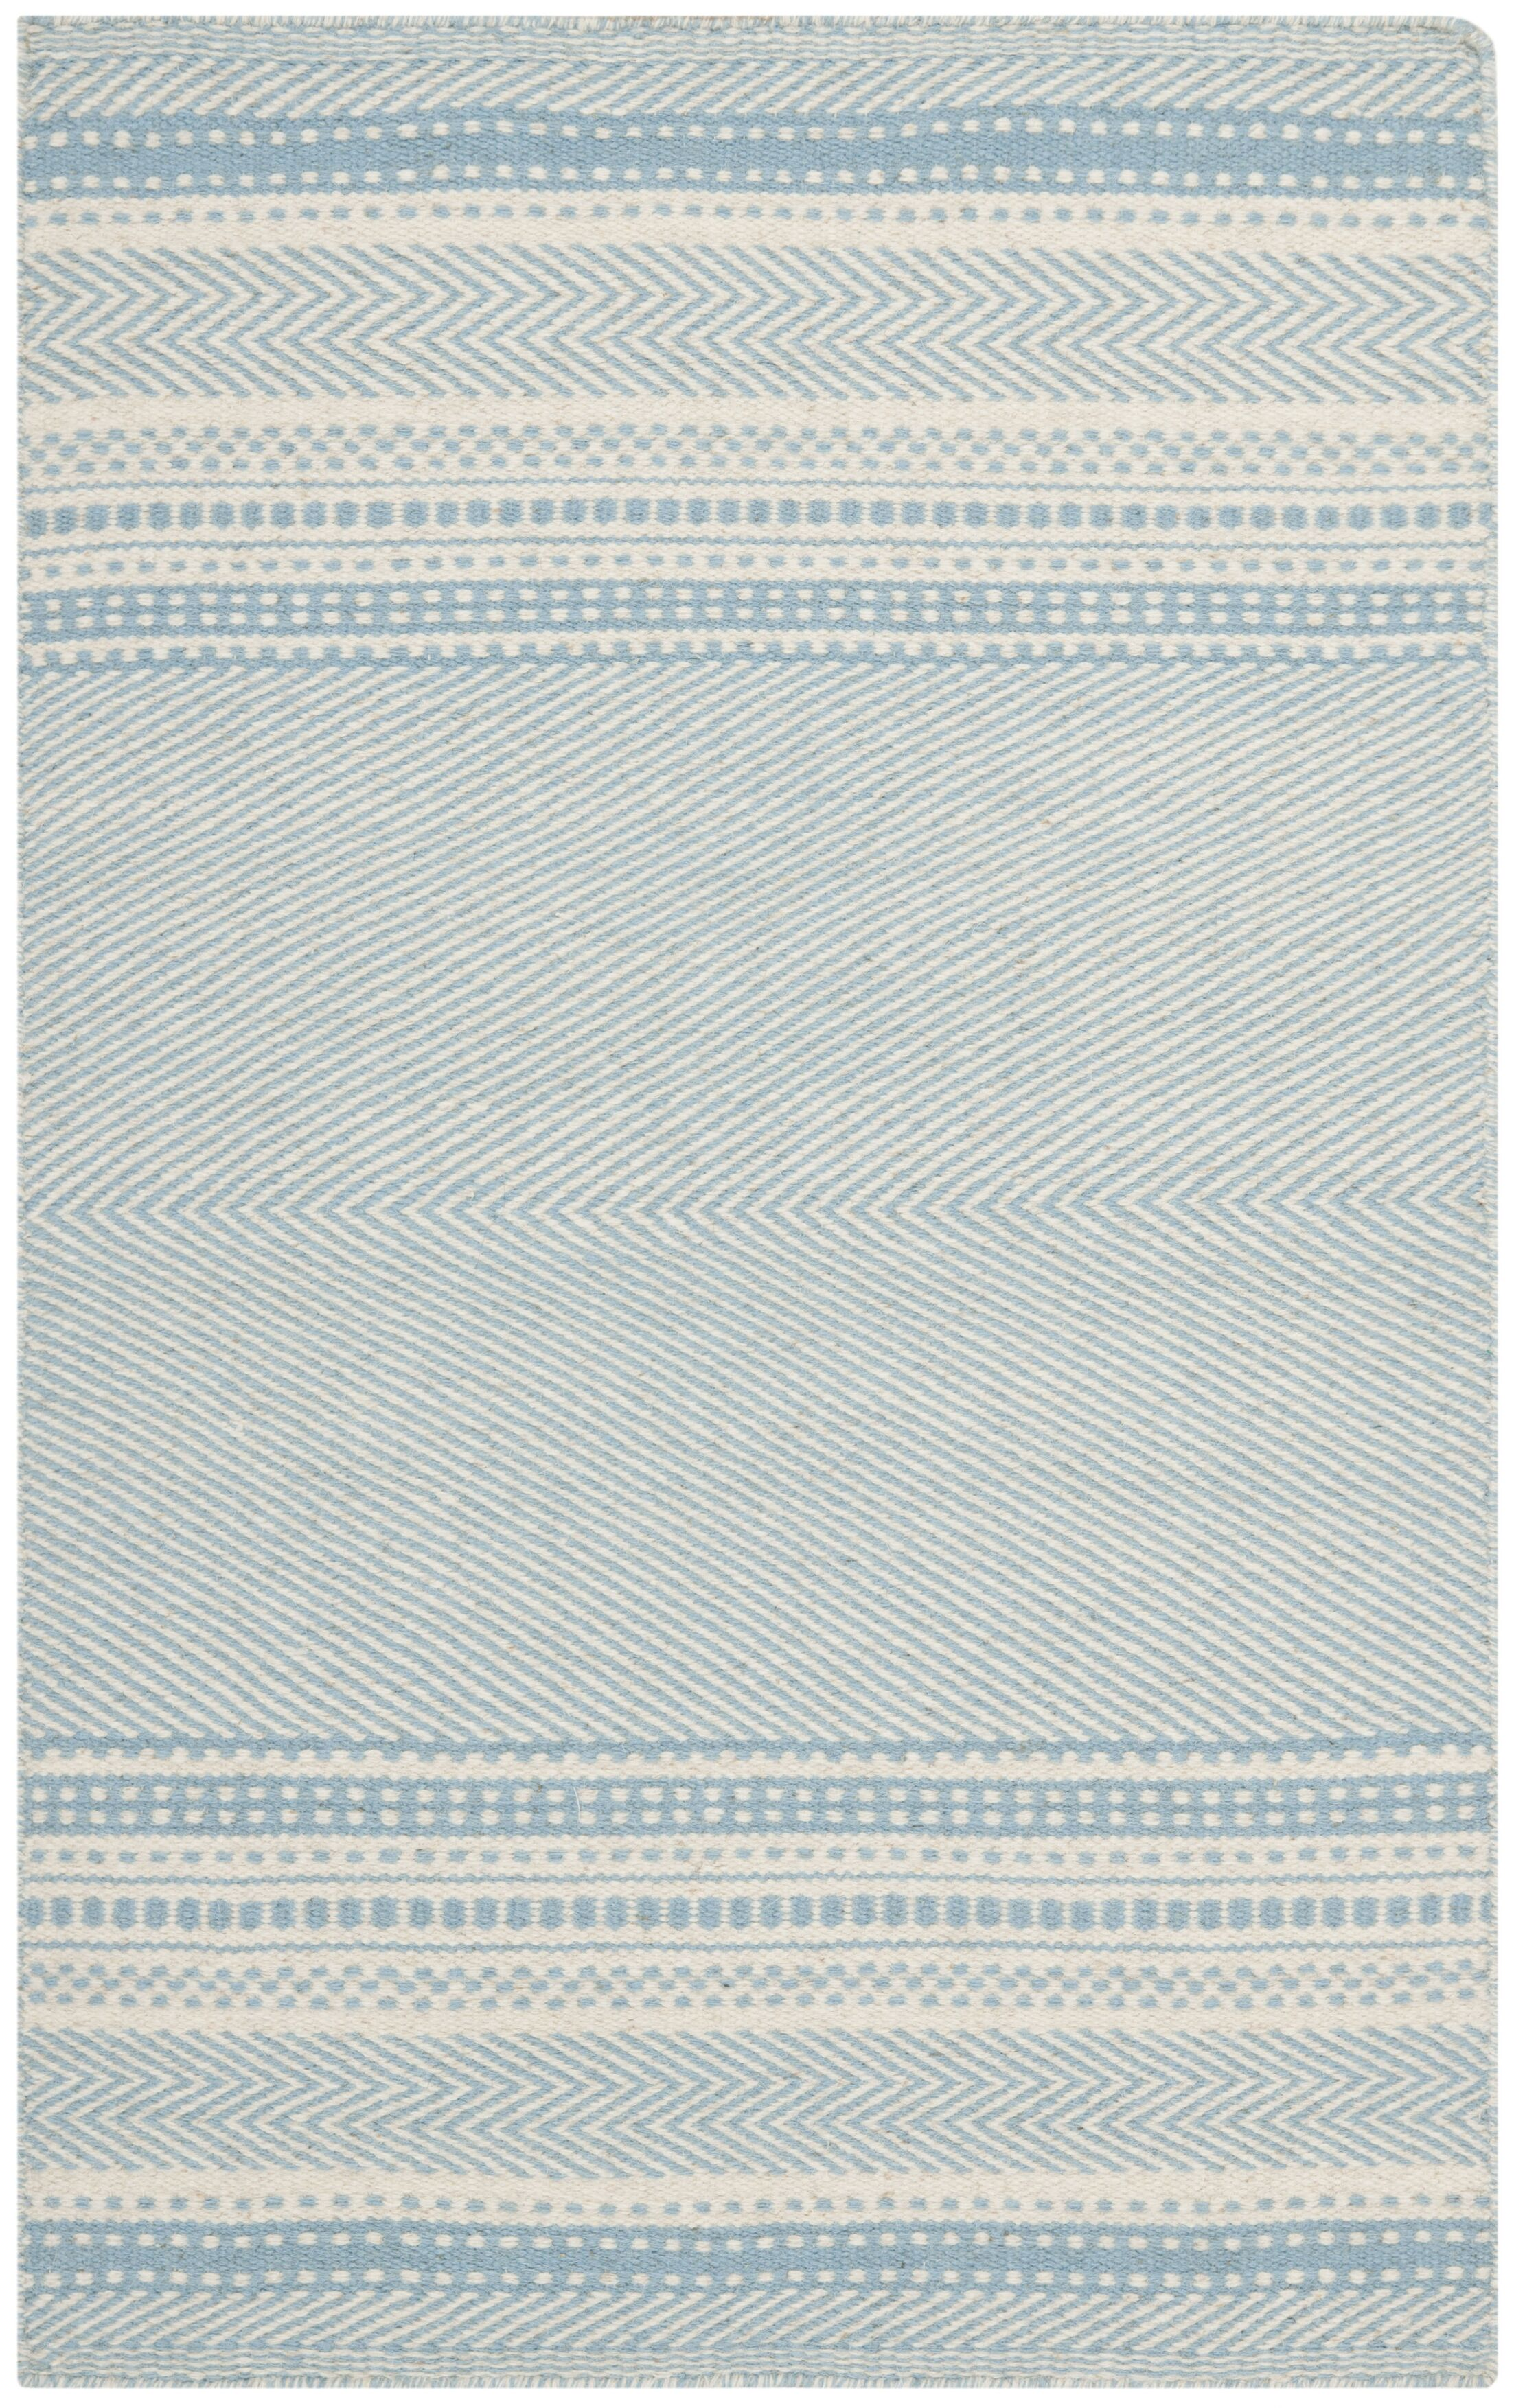 Kilim Hand-Woven Wool Light Blue/Ivory Area Rug Rug Size: Rectangle 8' x 10'